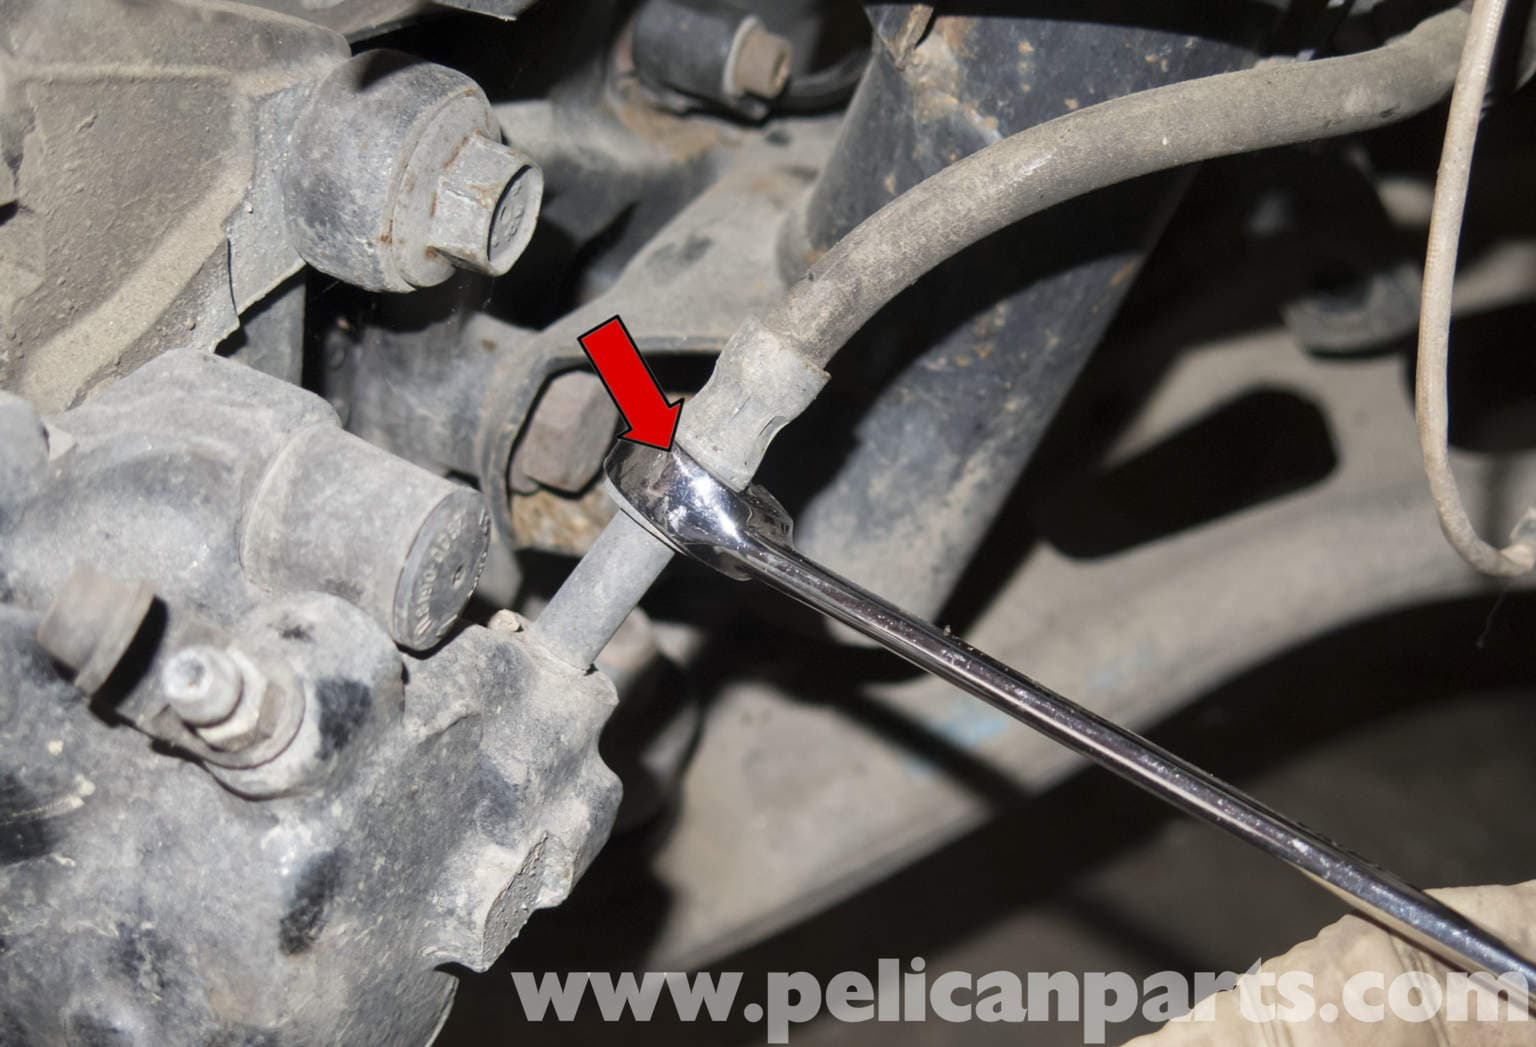 Bmw Z4 M Brake Caliper And Hose Replacement 2003 2006 Pelican Parts Diy Maintenance Article